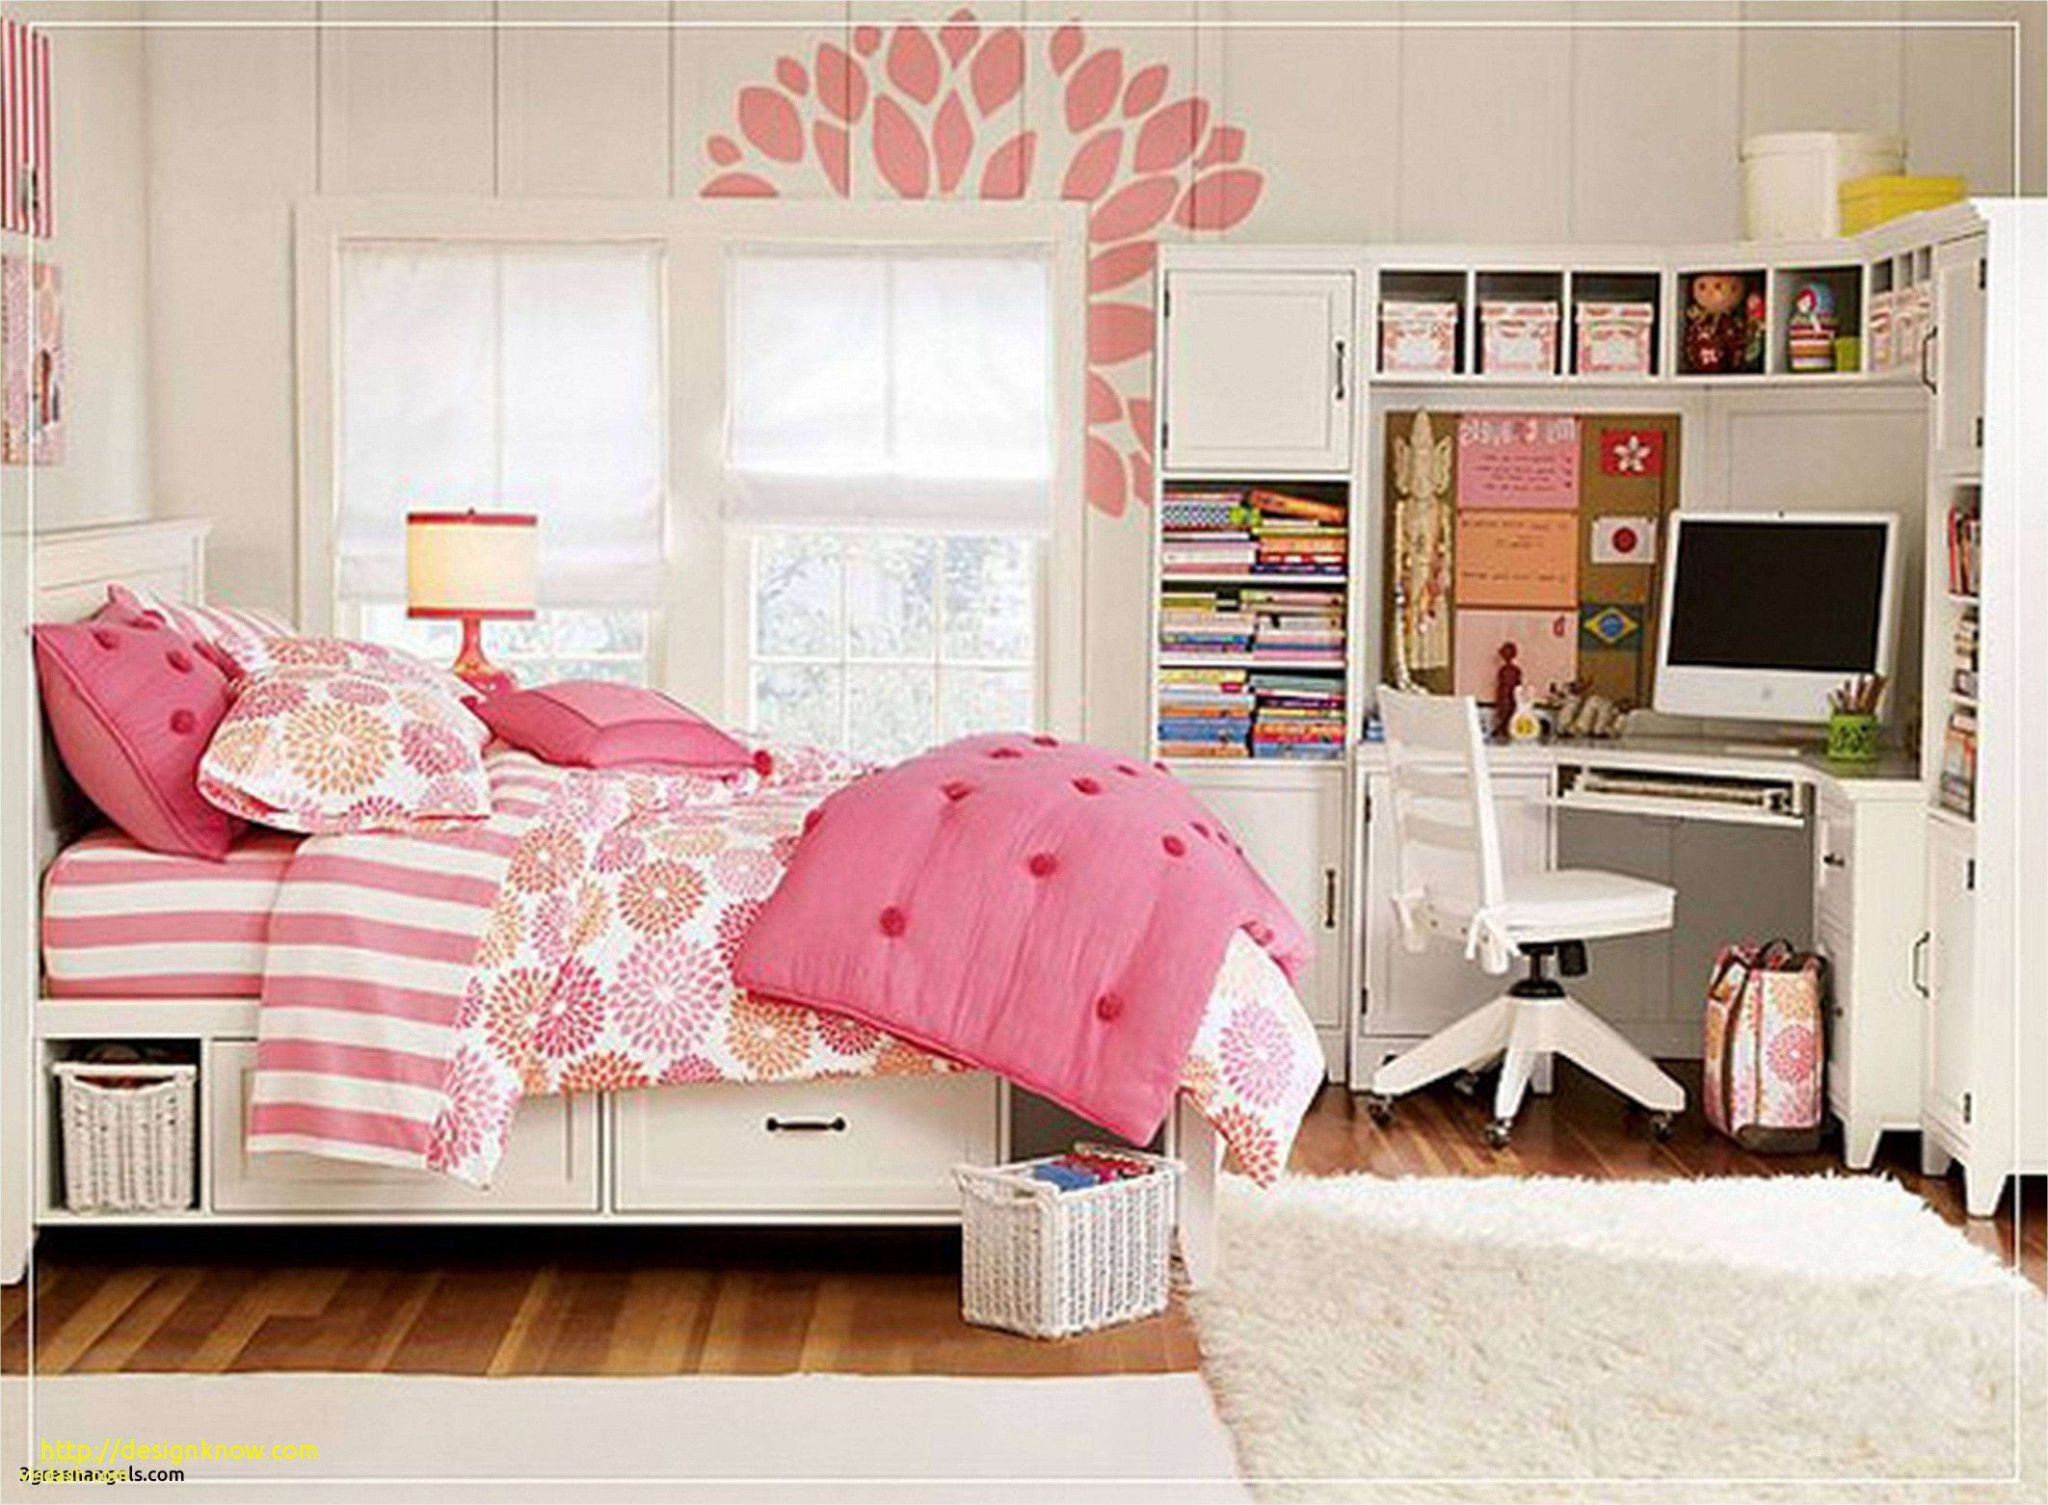 Home Furniture Bedroom Set Lovely Unique Interior Design for Small Size Bedroom